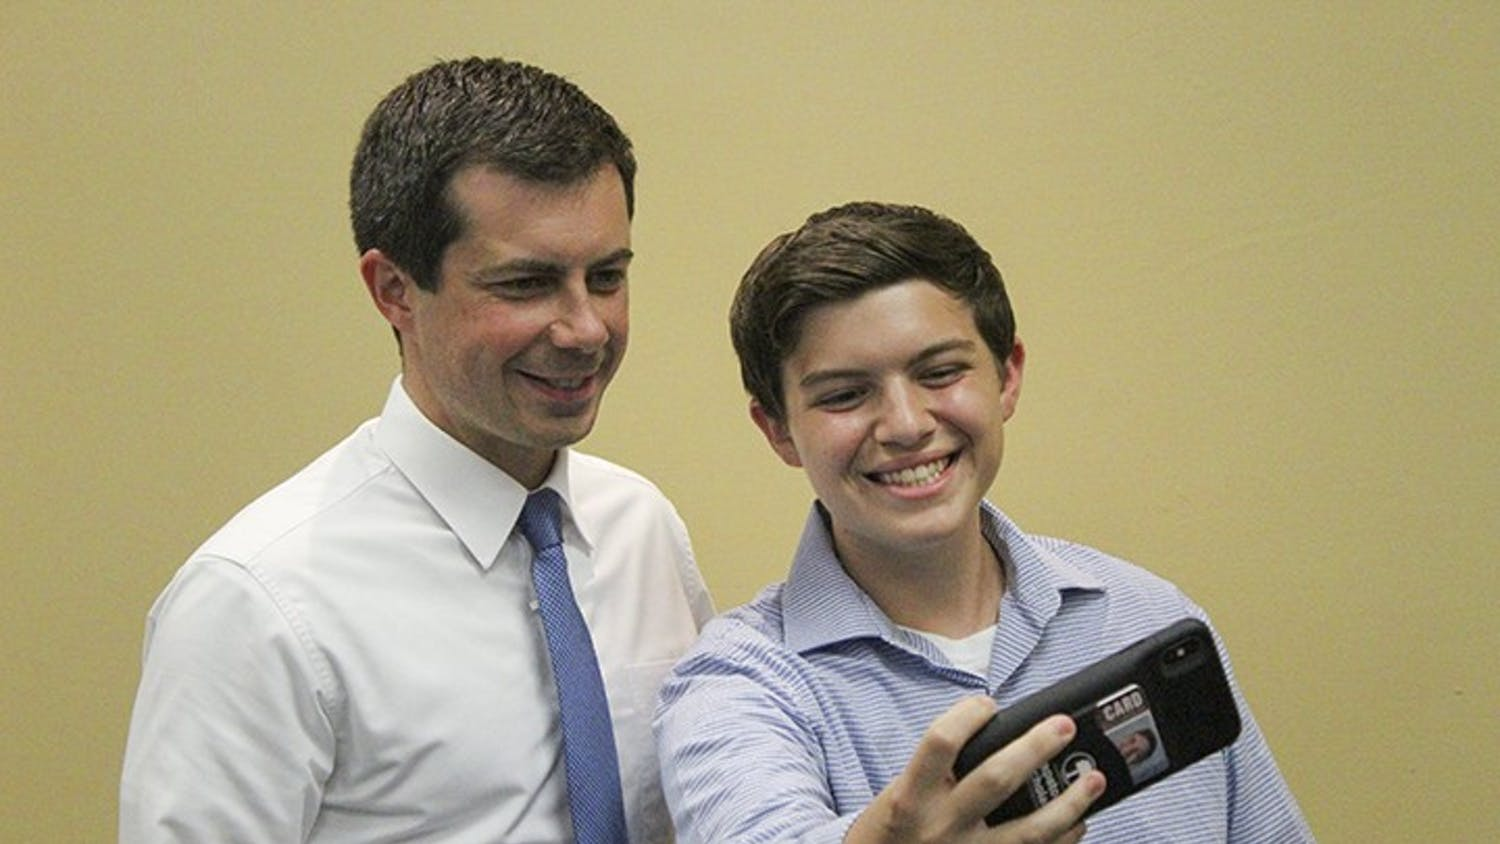 First-year business major Hayden Shipley takes a selfie with democratic presidential candidate Pete Buttegieg